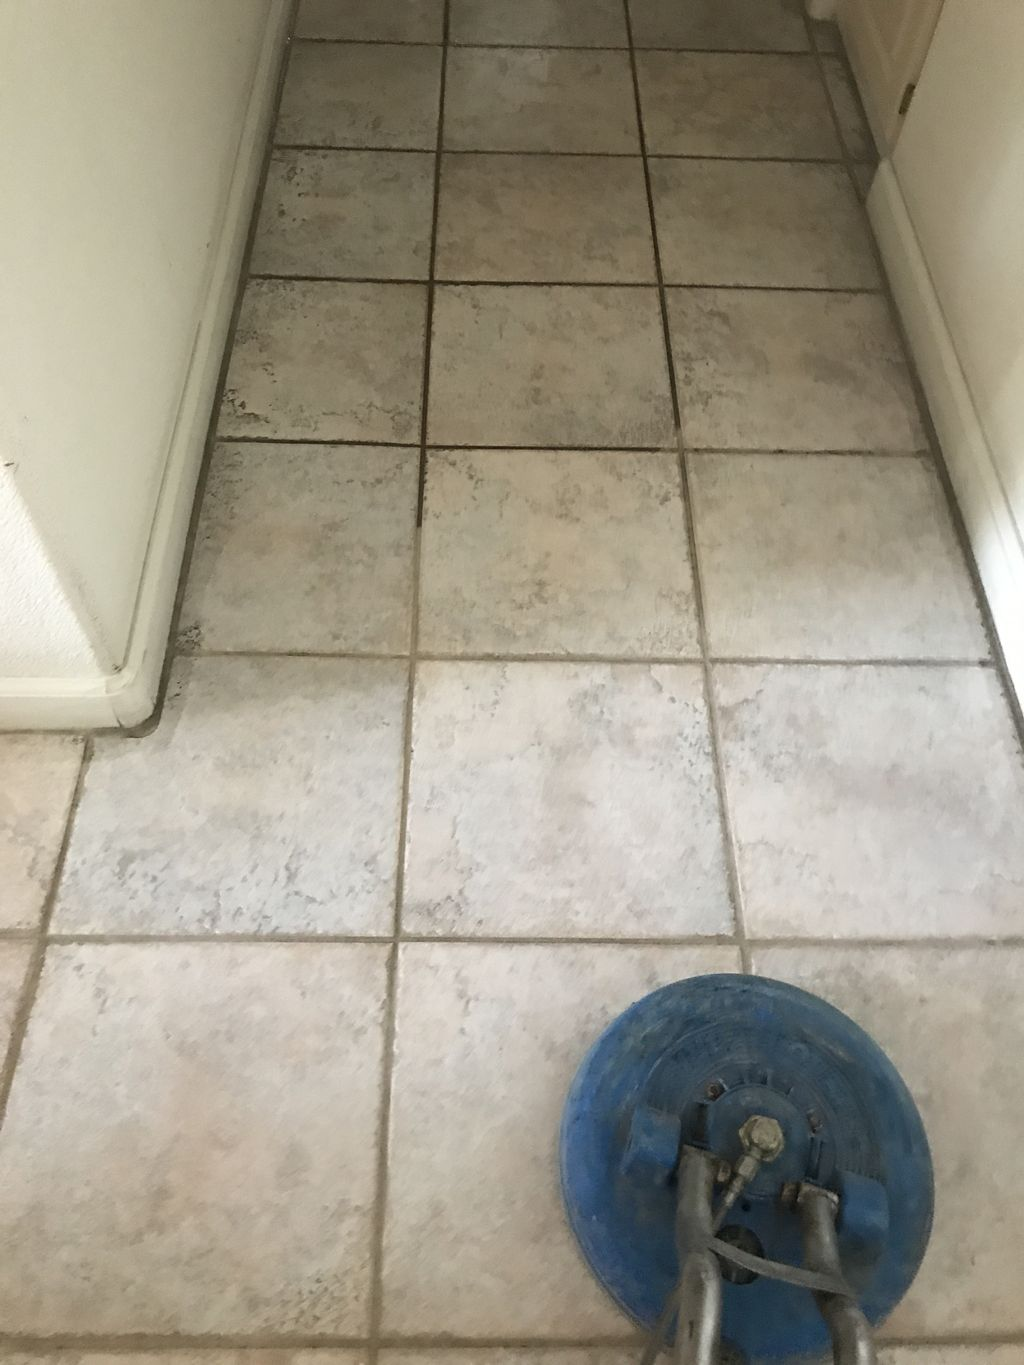 Tile and Grout Cleaning - Visalia 2019